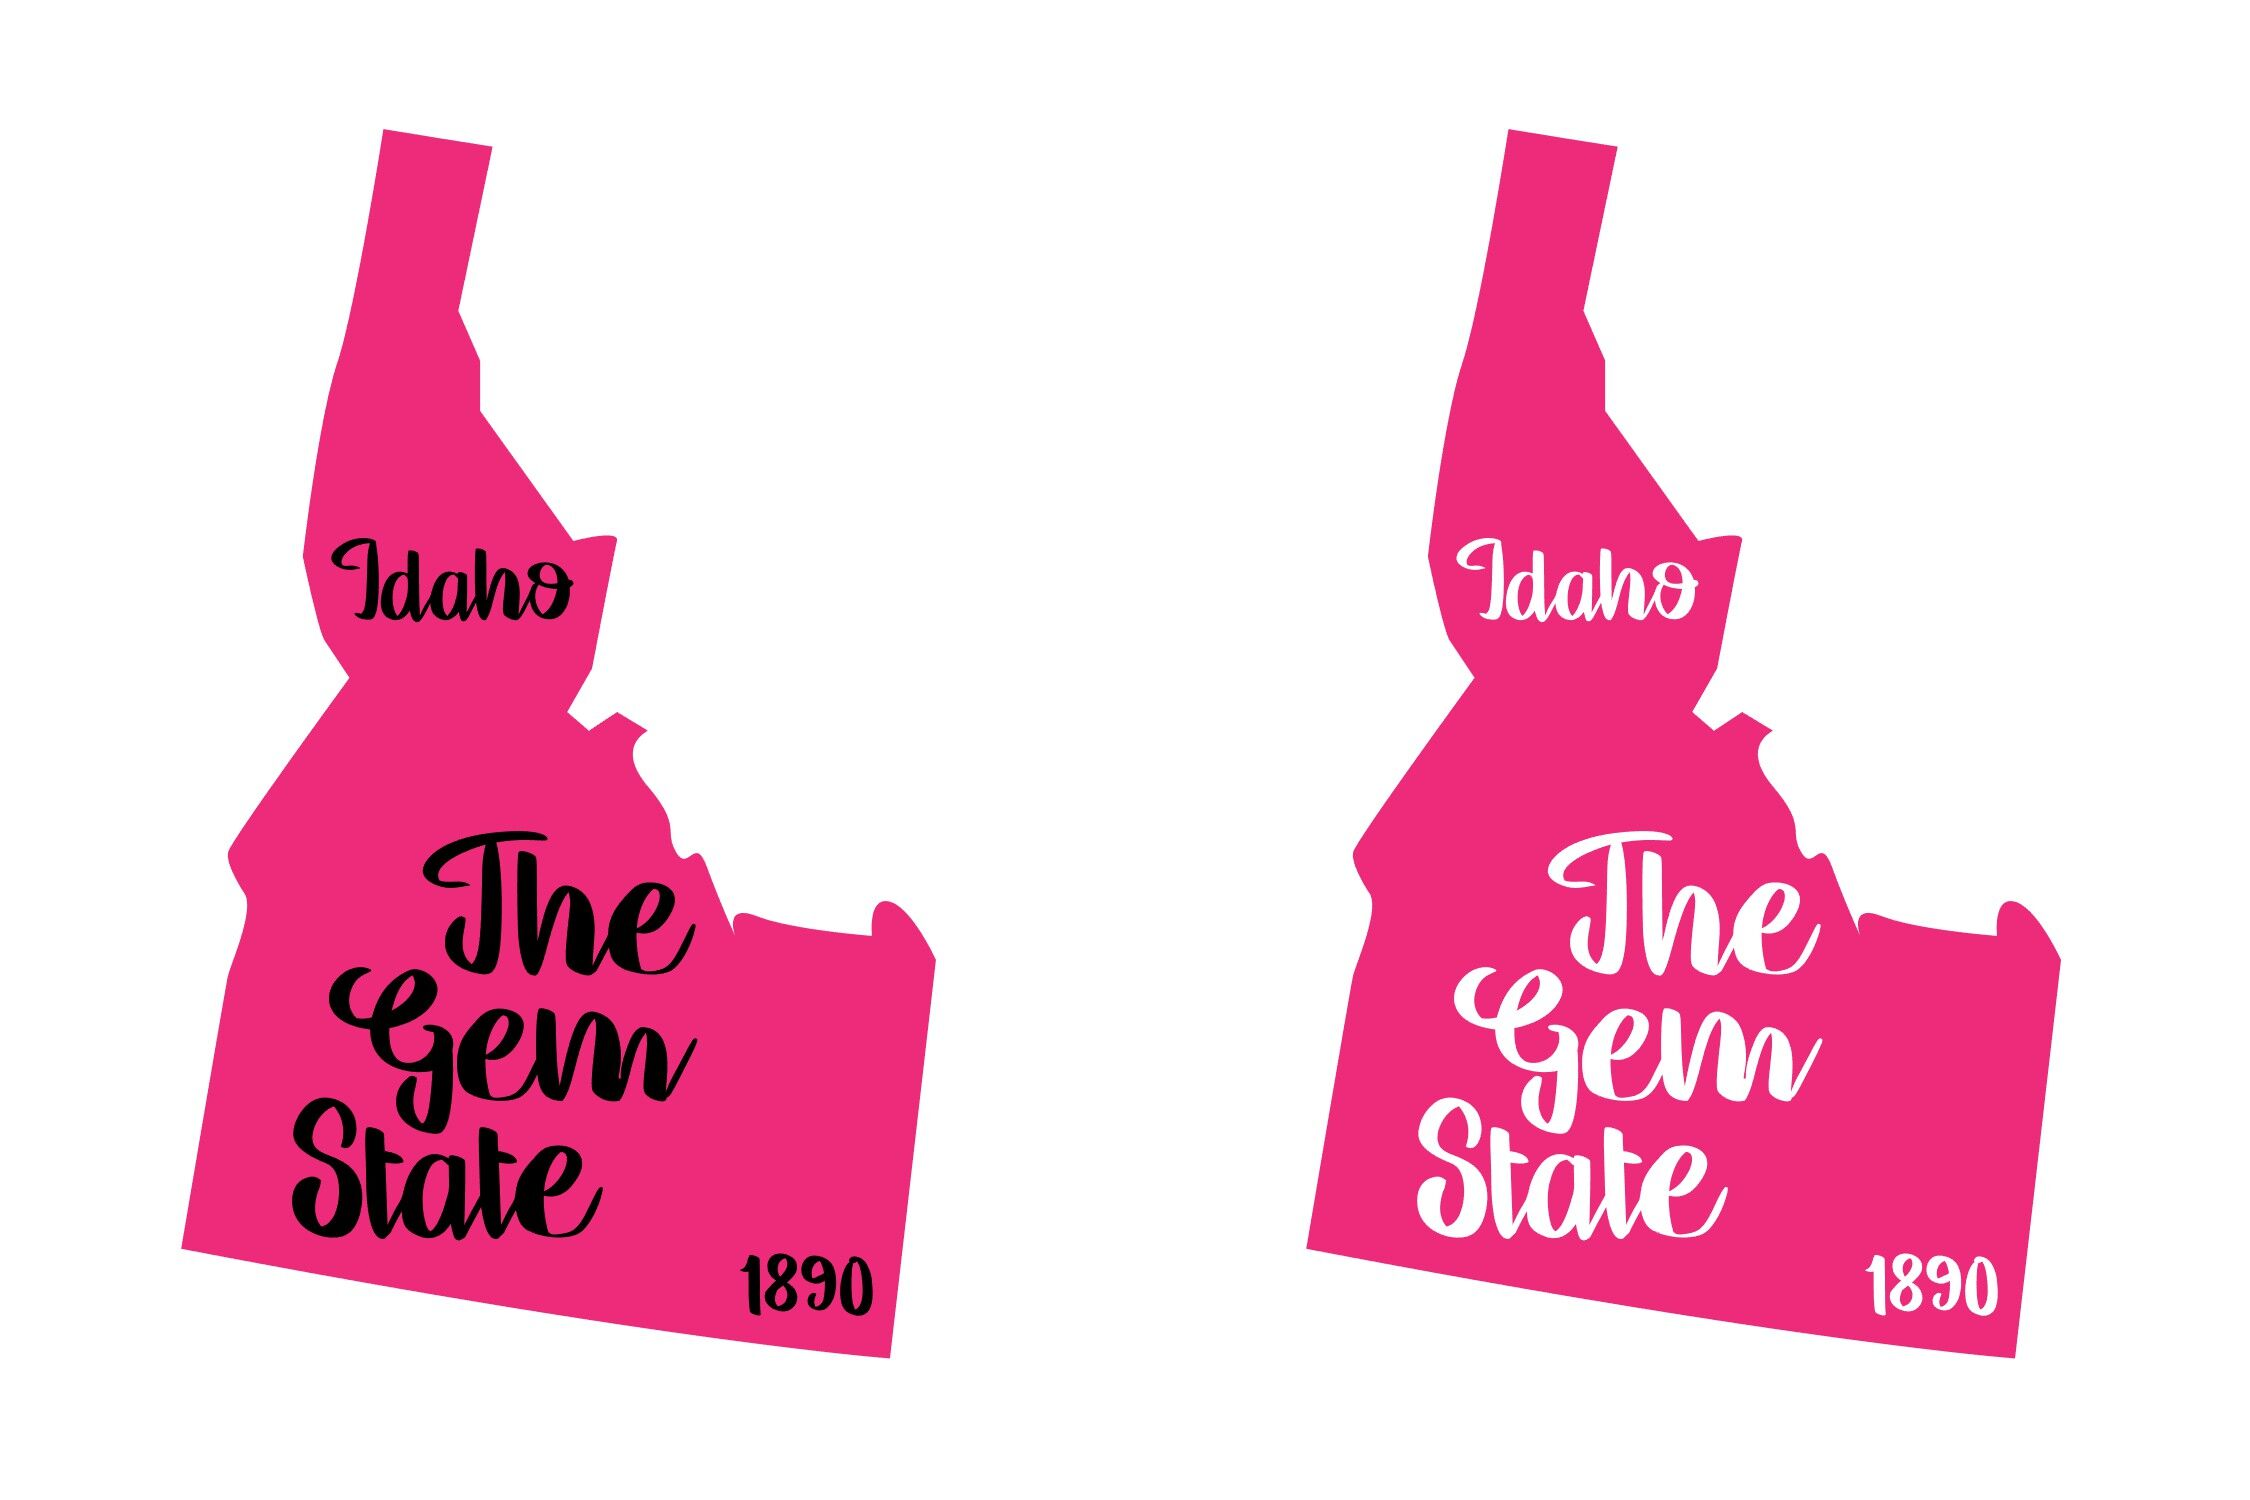 Idaho State Nickname Est Year 2 Files Svg Png Eps By